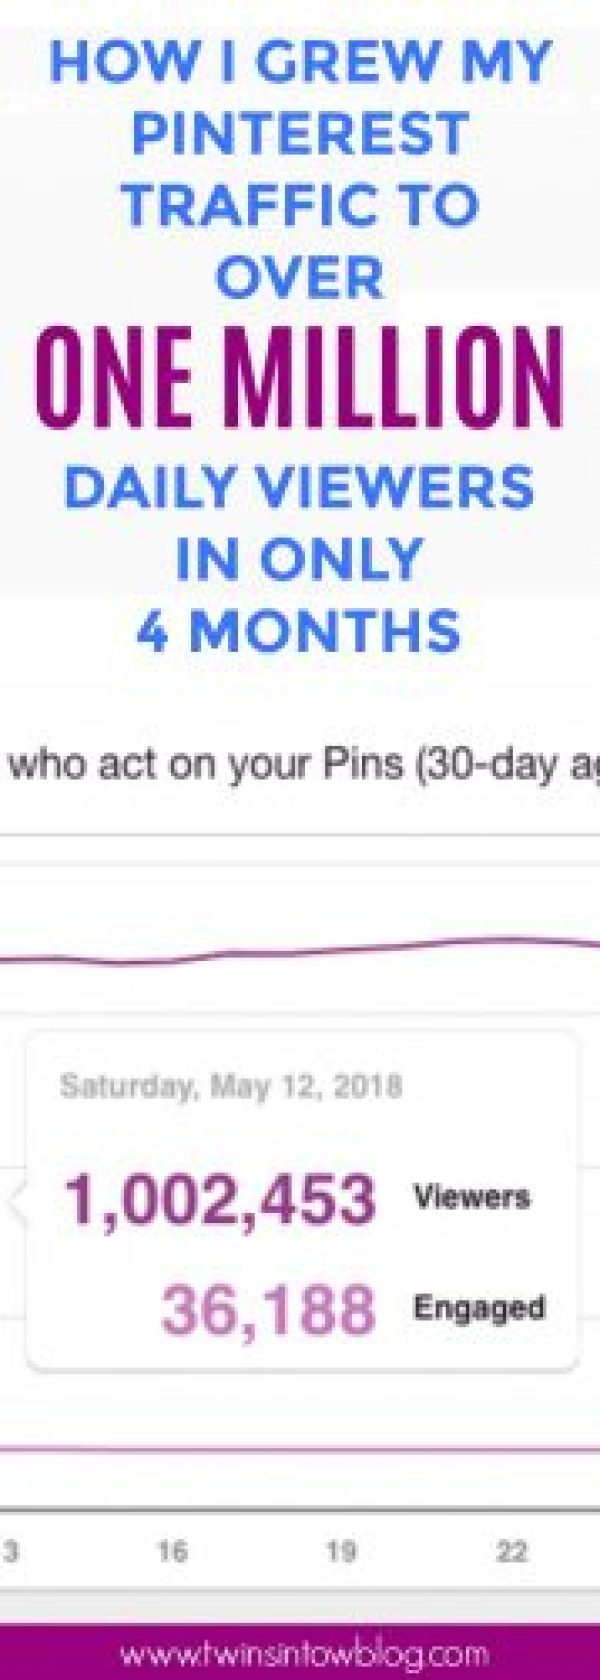 how to grow pinterest traffic